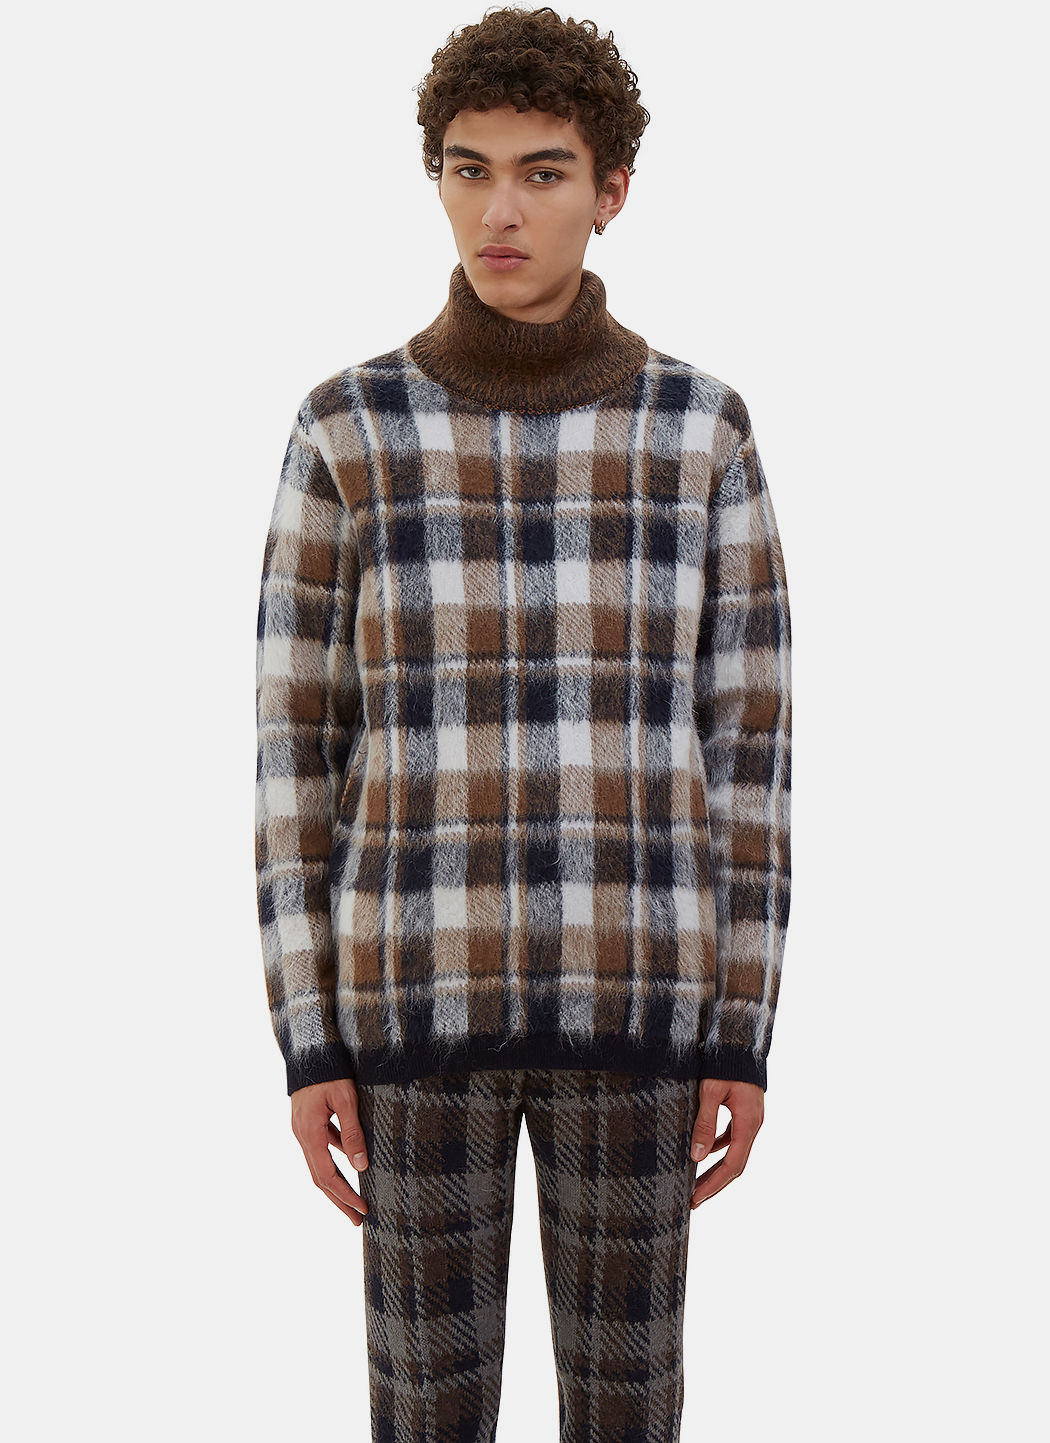 Men's Checked Hairy Knit Roll Neck Sweater In Navy, White And Brown